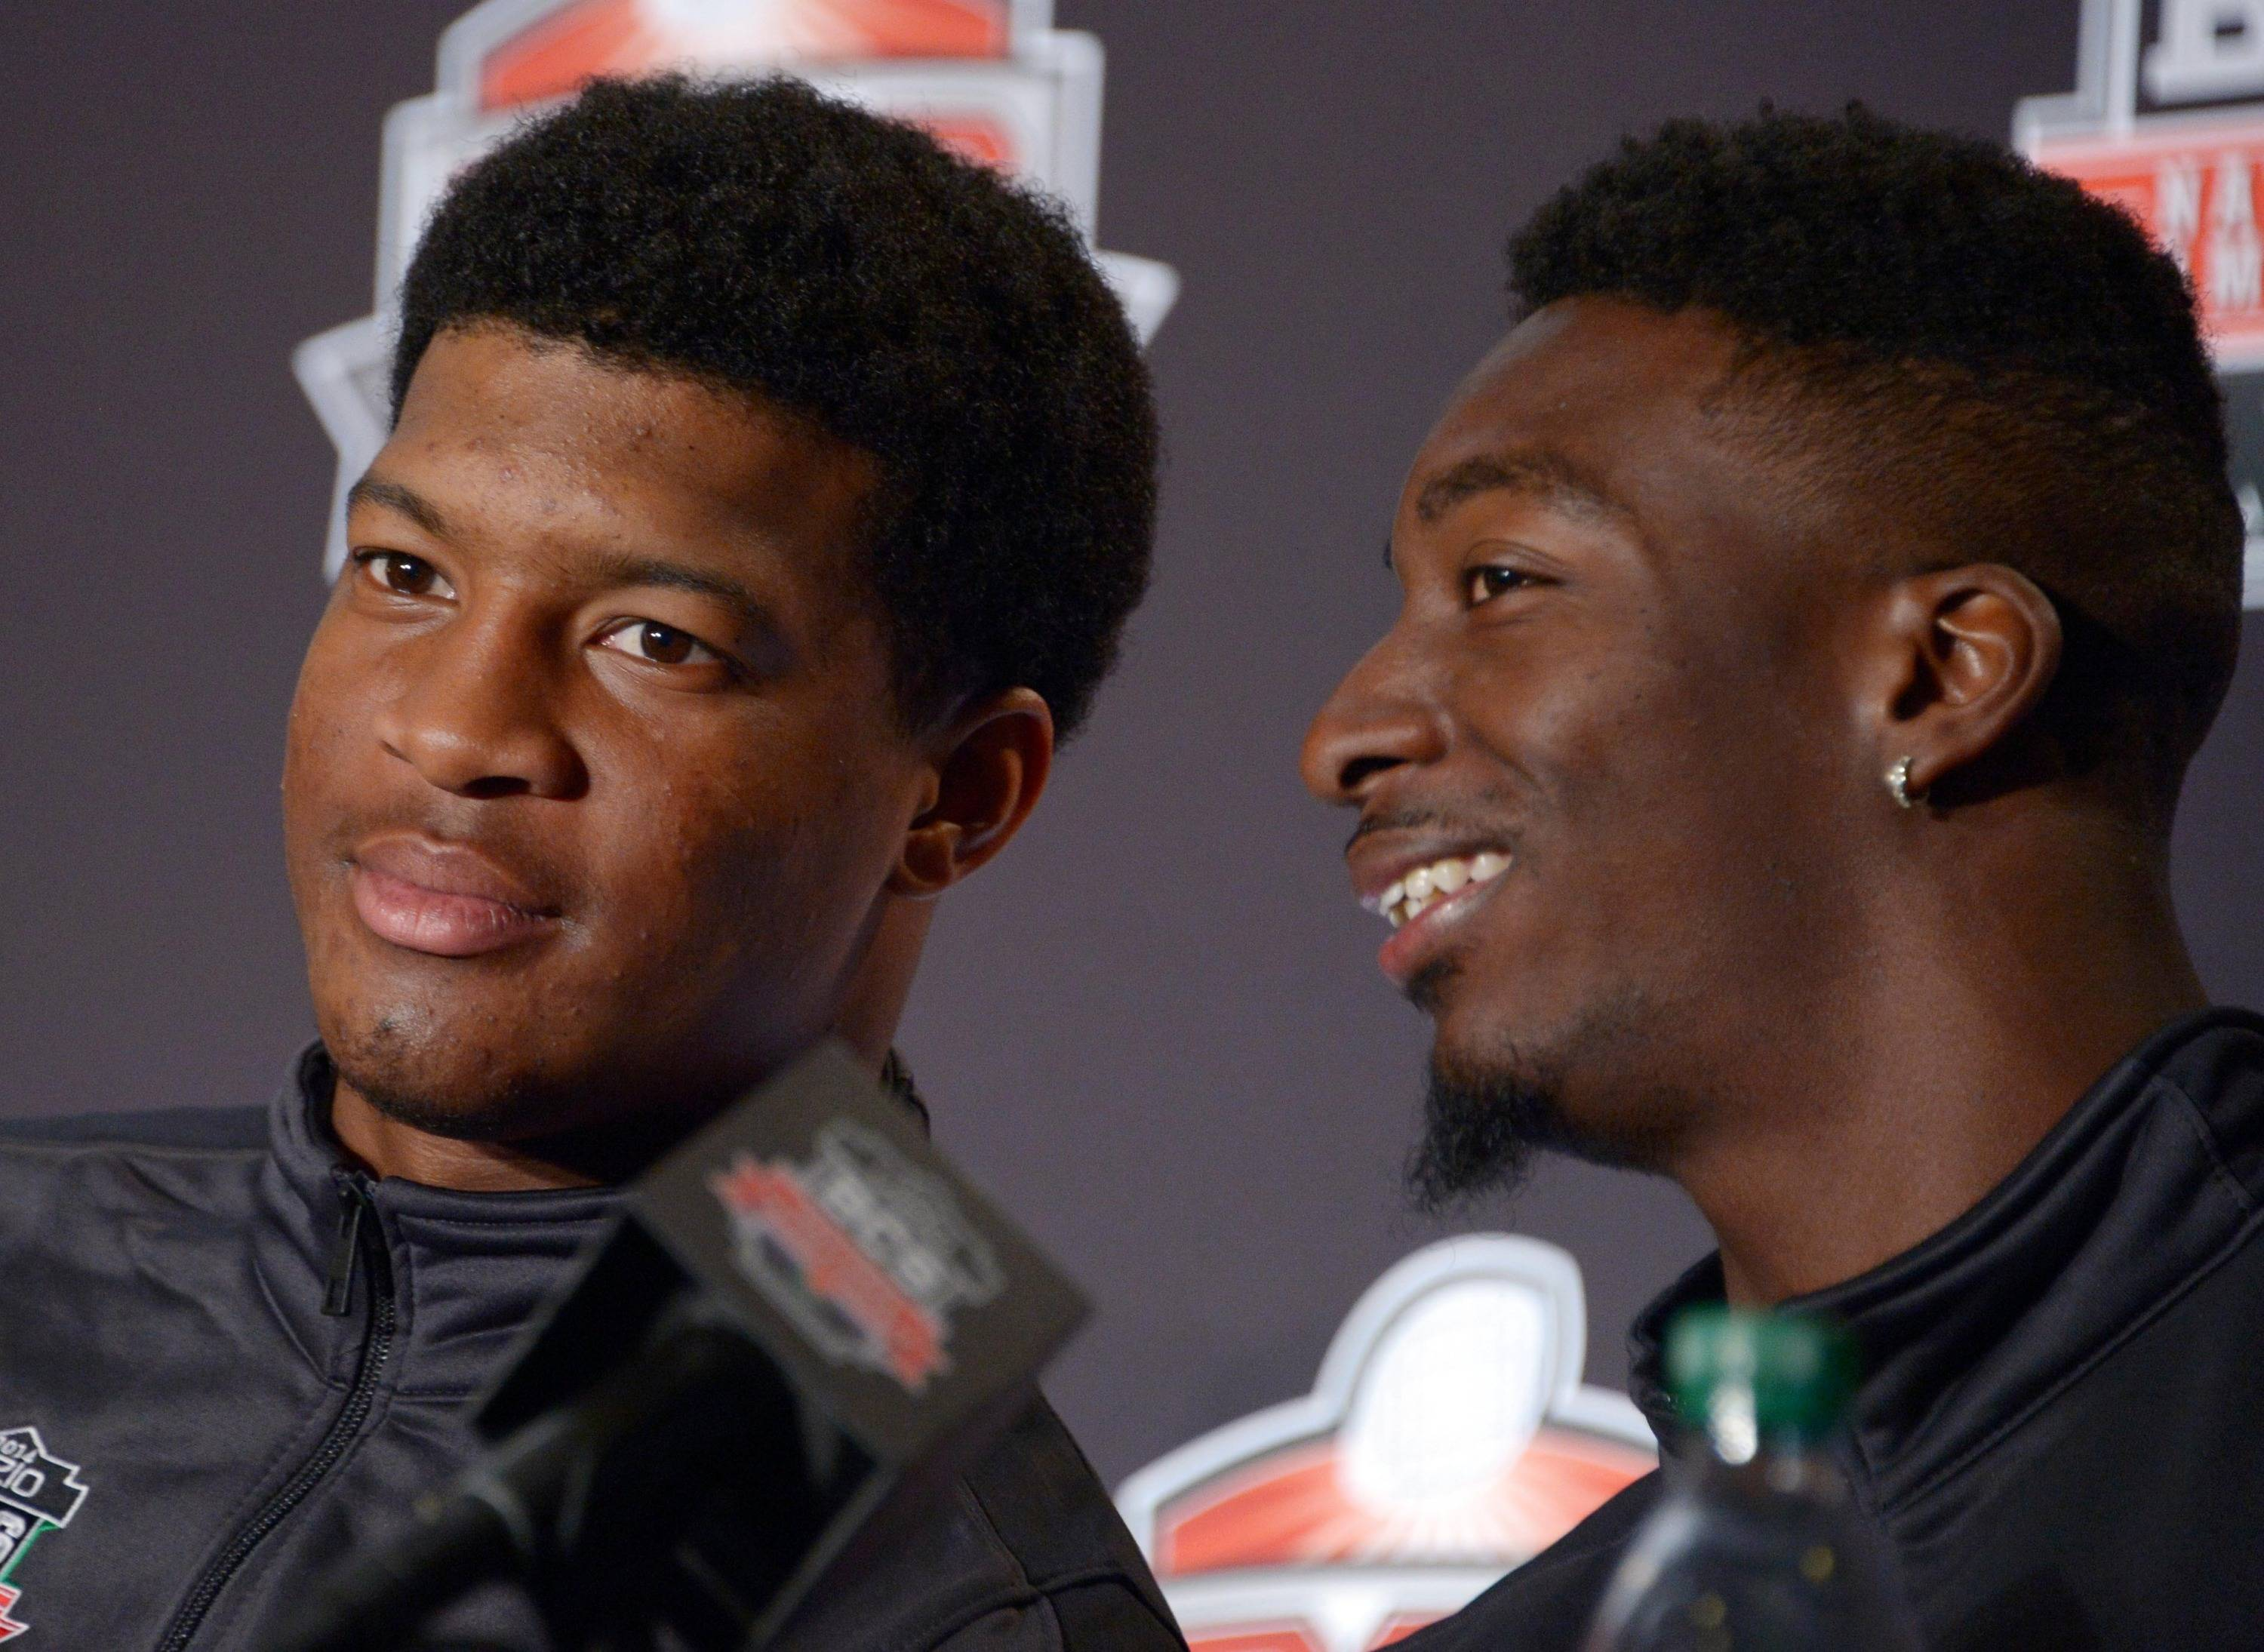 Florida State Seminoles quarterback Jameis Winston (left) and receiver Kenny Shaw at a 2014 BCS National Championship press conference at Newport Beach Marriott. Mandatory Credit: Kirby Lee-USA TODAY Sports